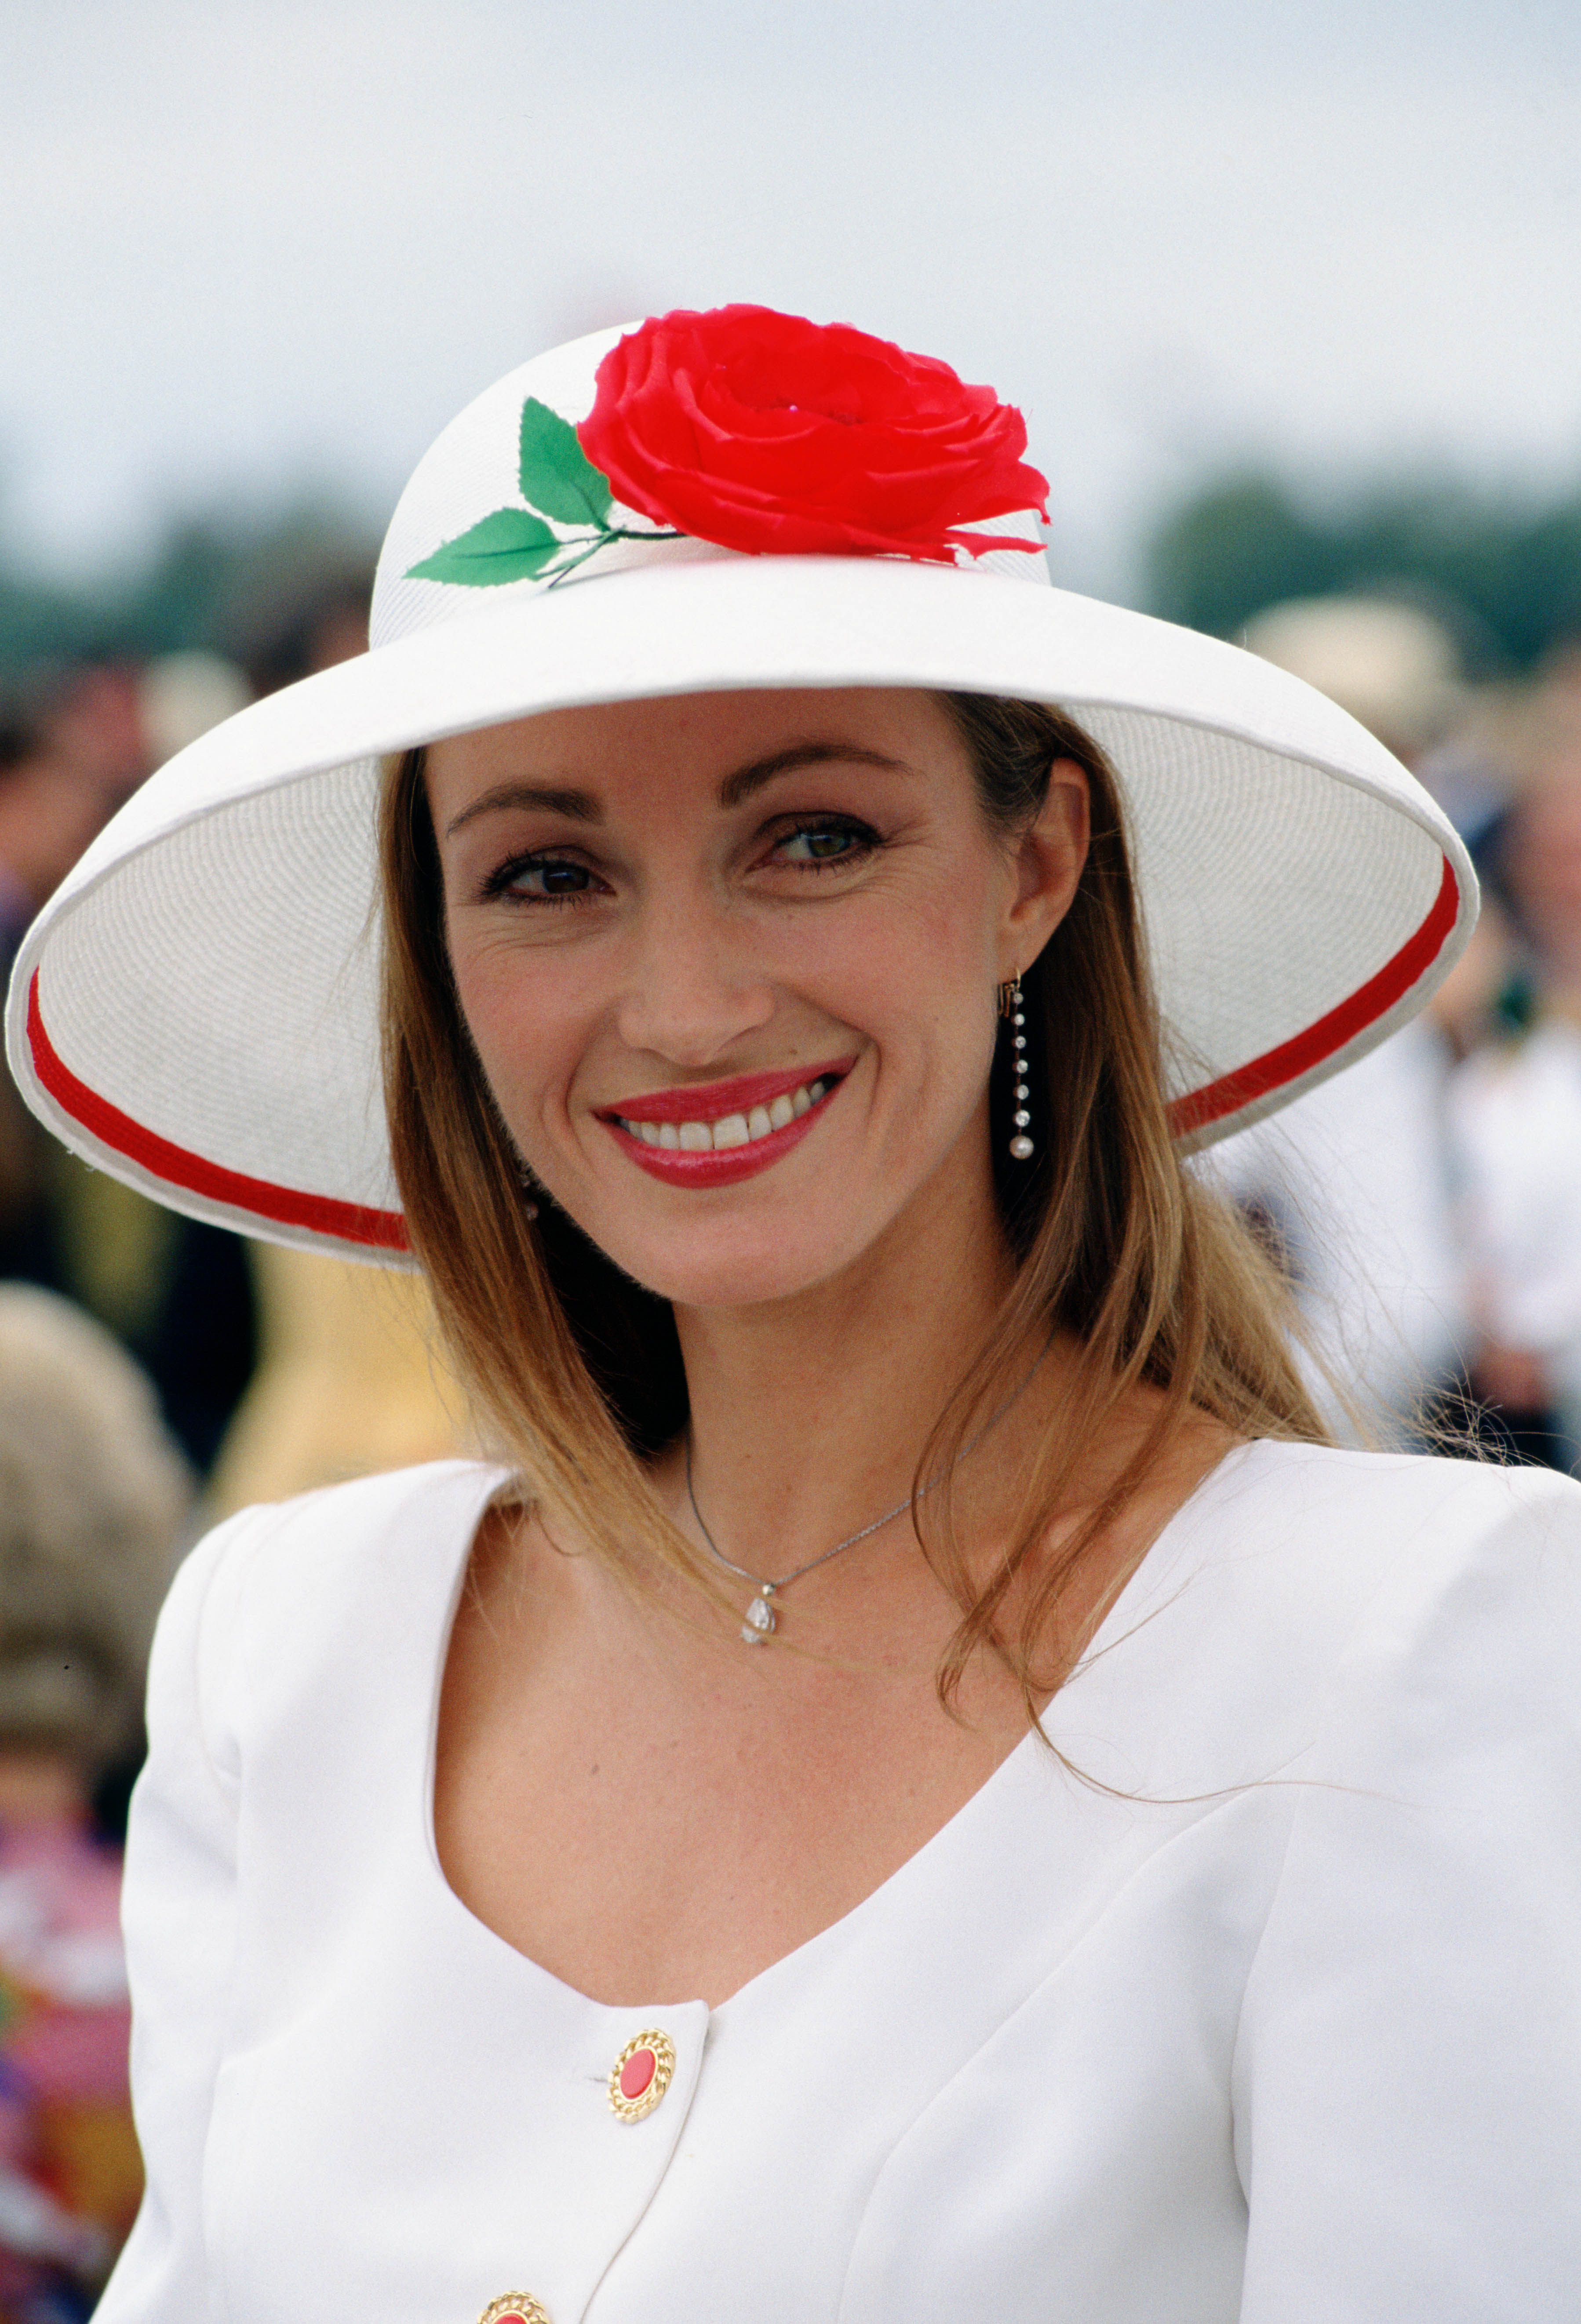 Jane Seymour at Cartier Polo Day, Windsor, Berkshire, UK July 29, 1990 | Photo: GettyImages